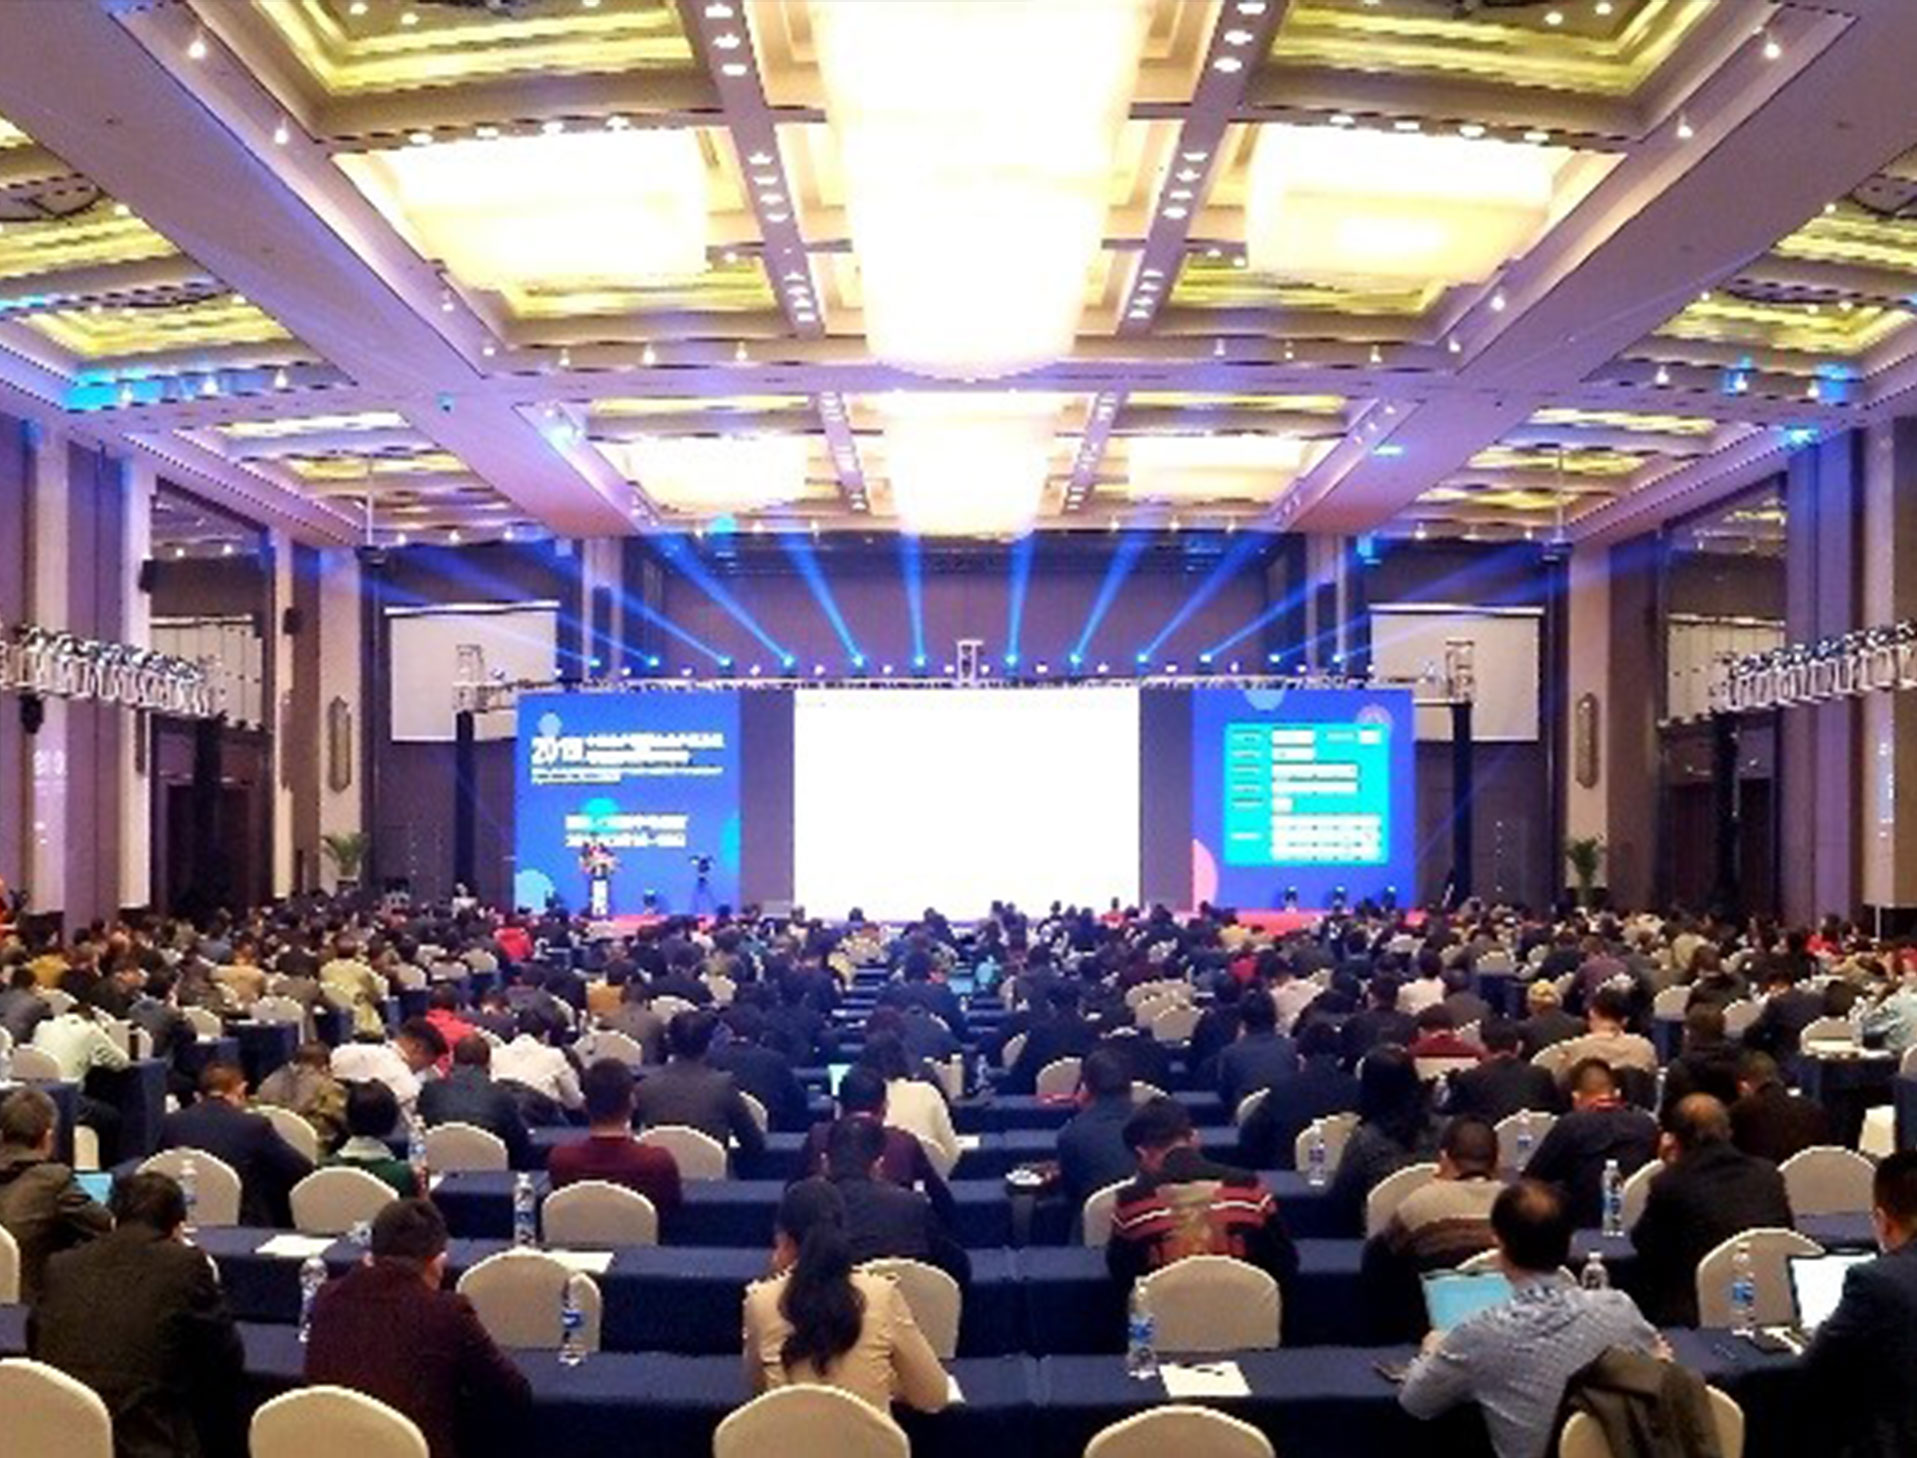 2019 China Aqua Feed Enterprises Product Upgrade and Operation Transformation Summit was successfully held in Wuhan, China